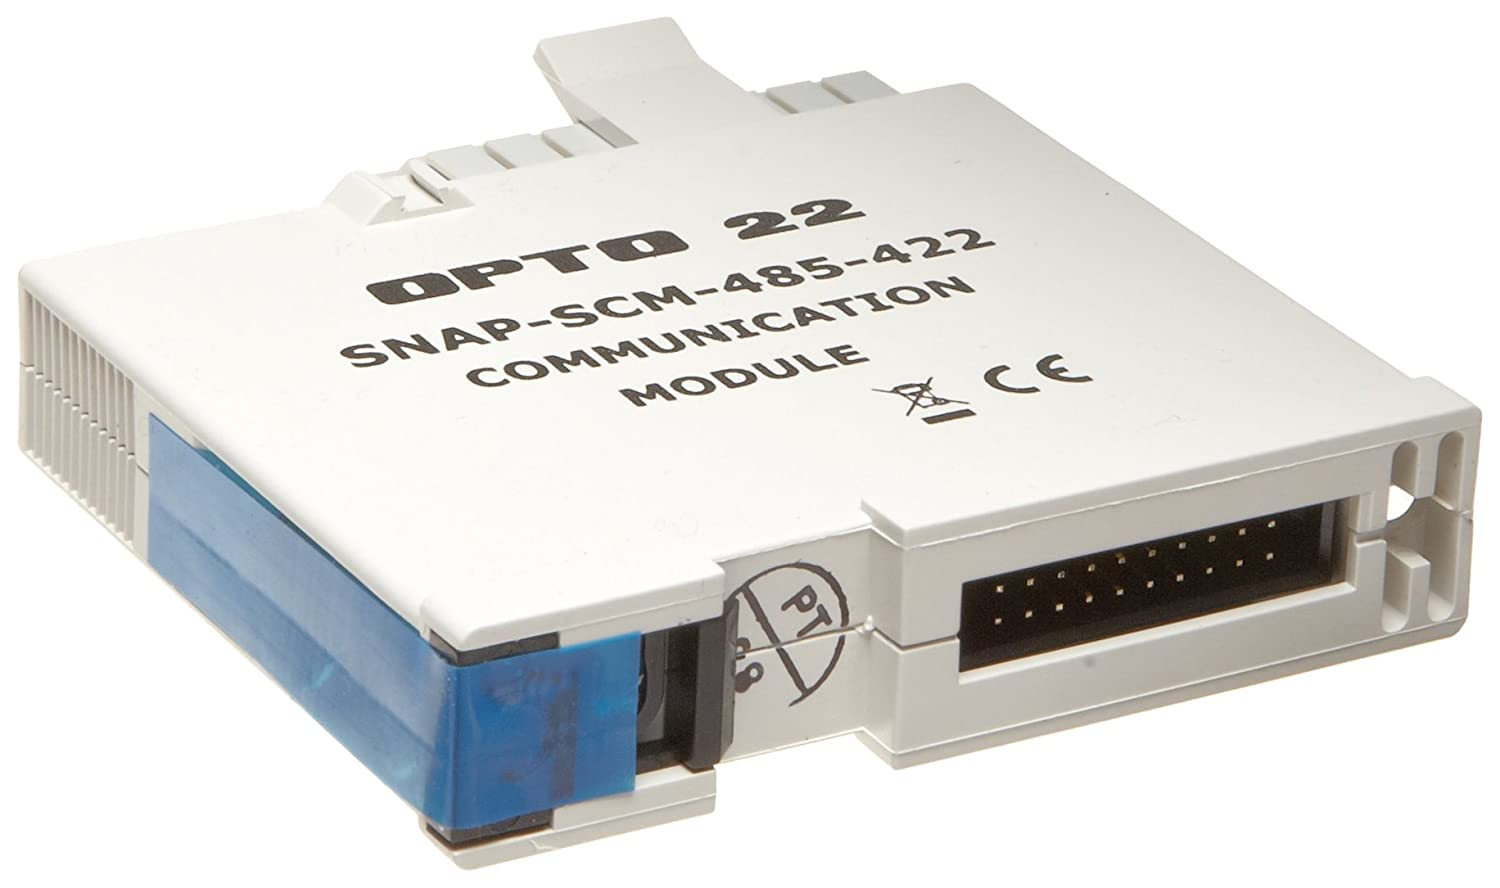 SNAP 2-Wire//4-Wire Serial Communication Module Opto 22 SNAP-SCM-485-422 2-Channel